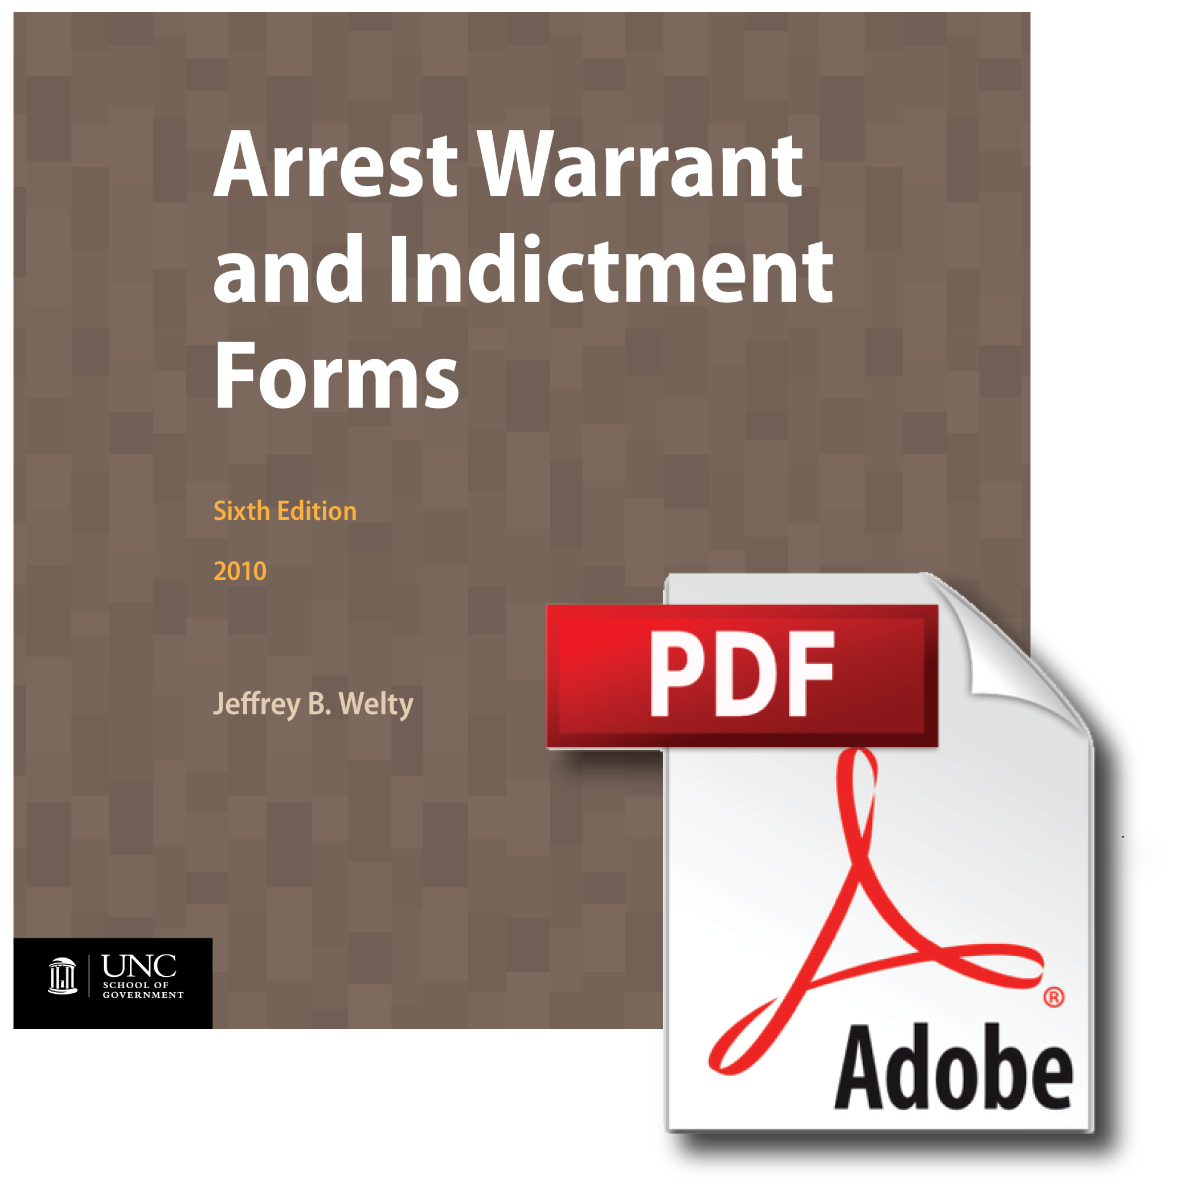 Cover image for 2014 Update to Arrest Warrant and Indictment Forms, Sixth Edition, 2010 (Free PDF)